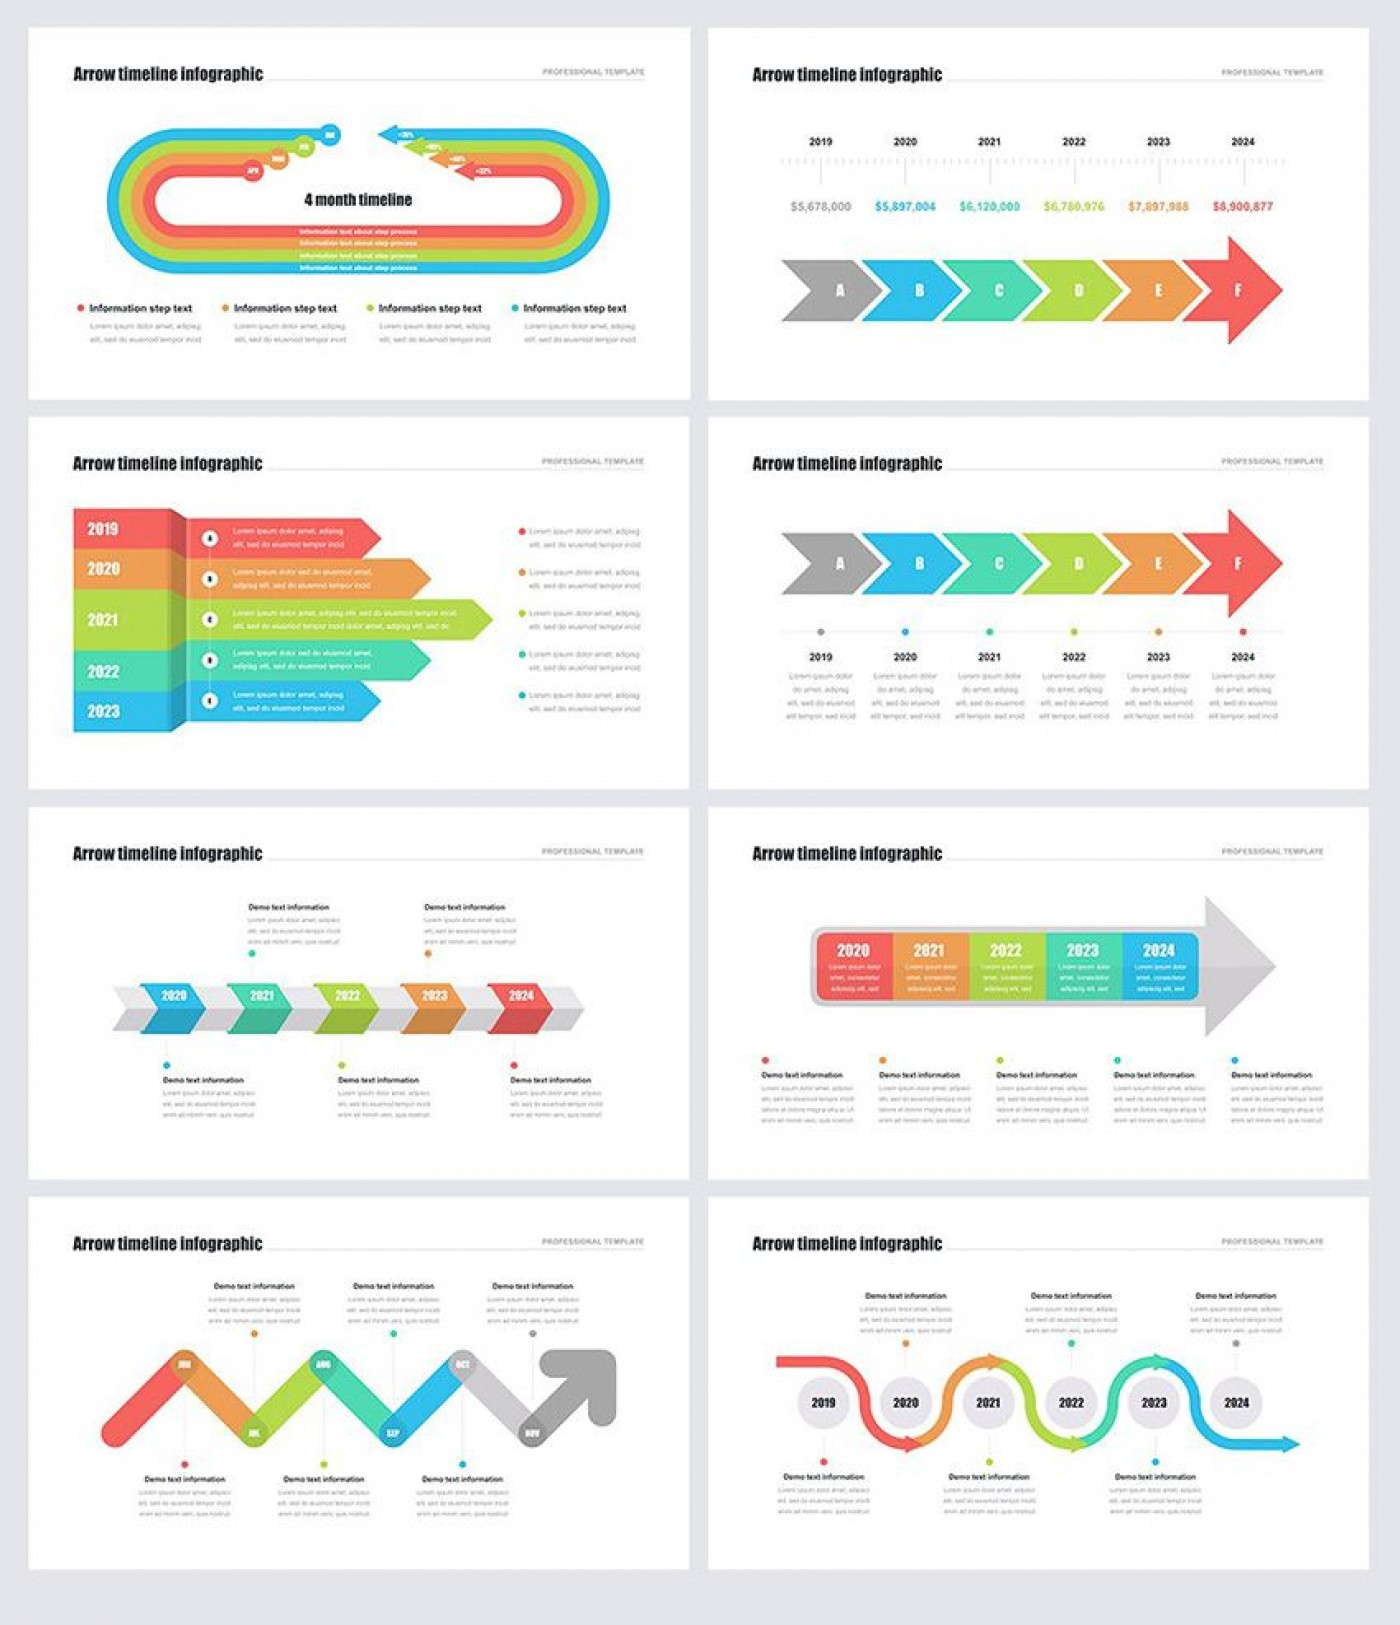 008 Top Timeline Template Presentationgo Highest Clarity 1400